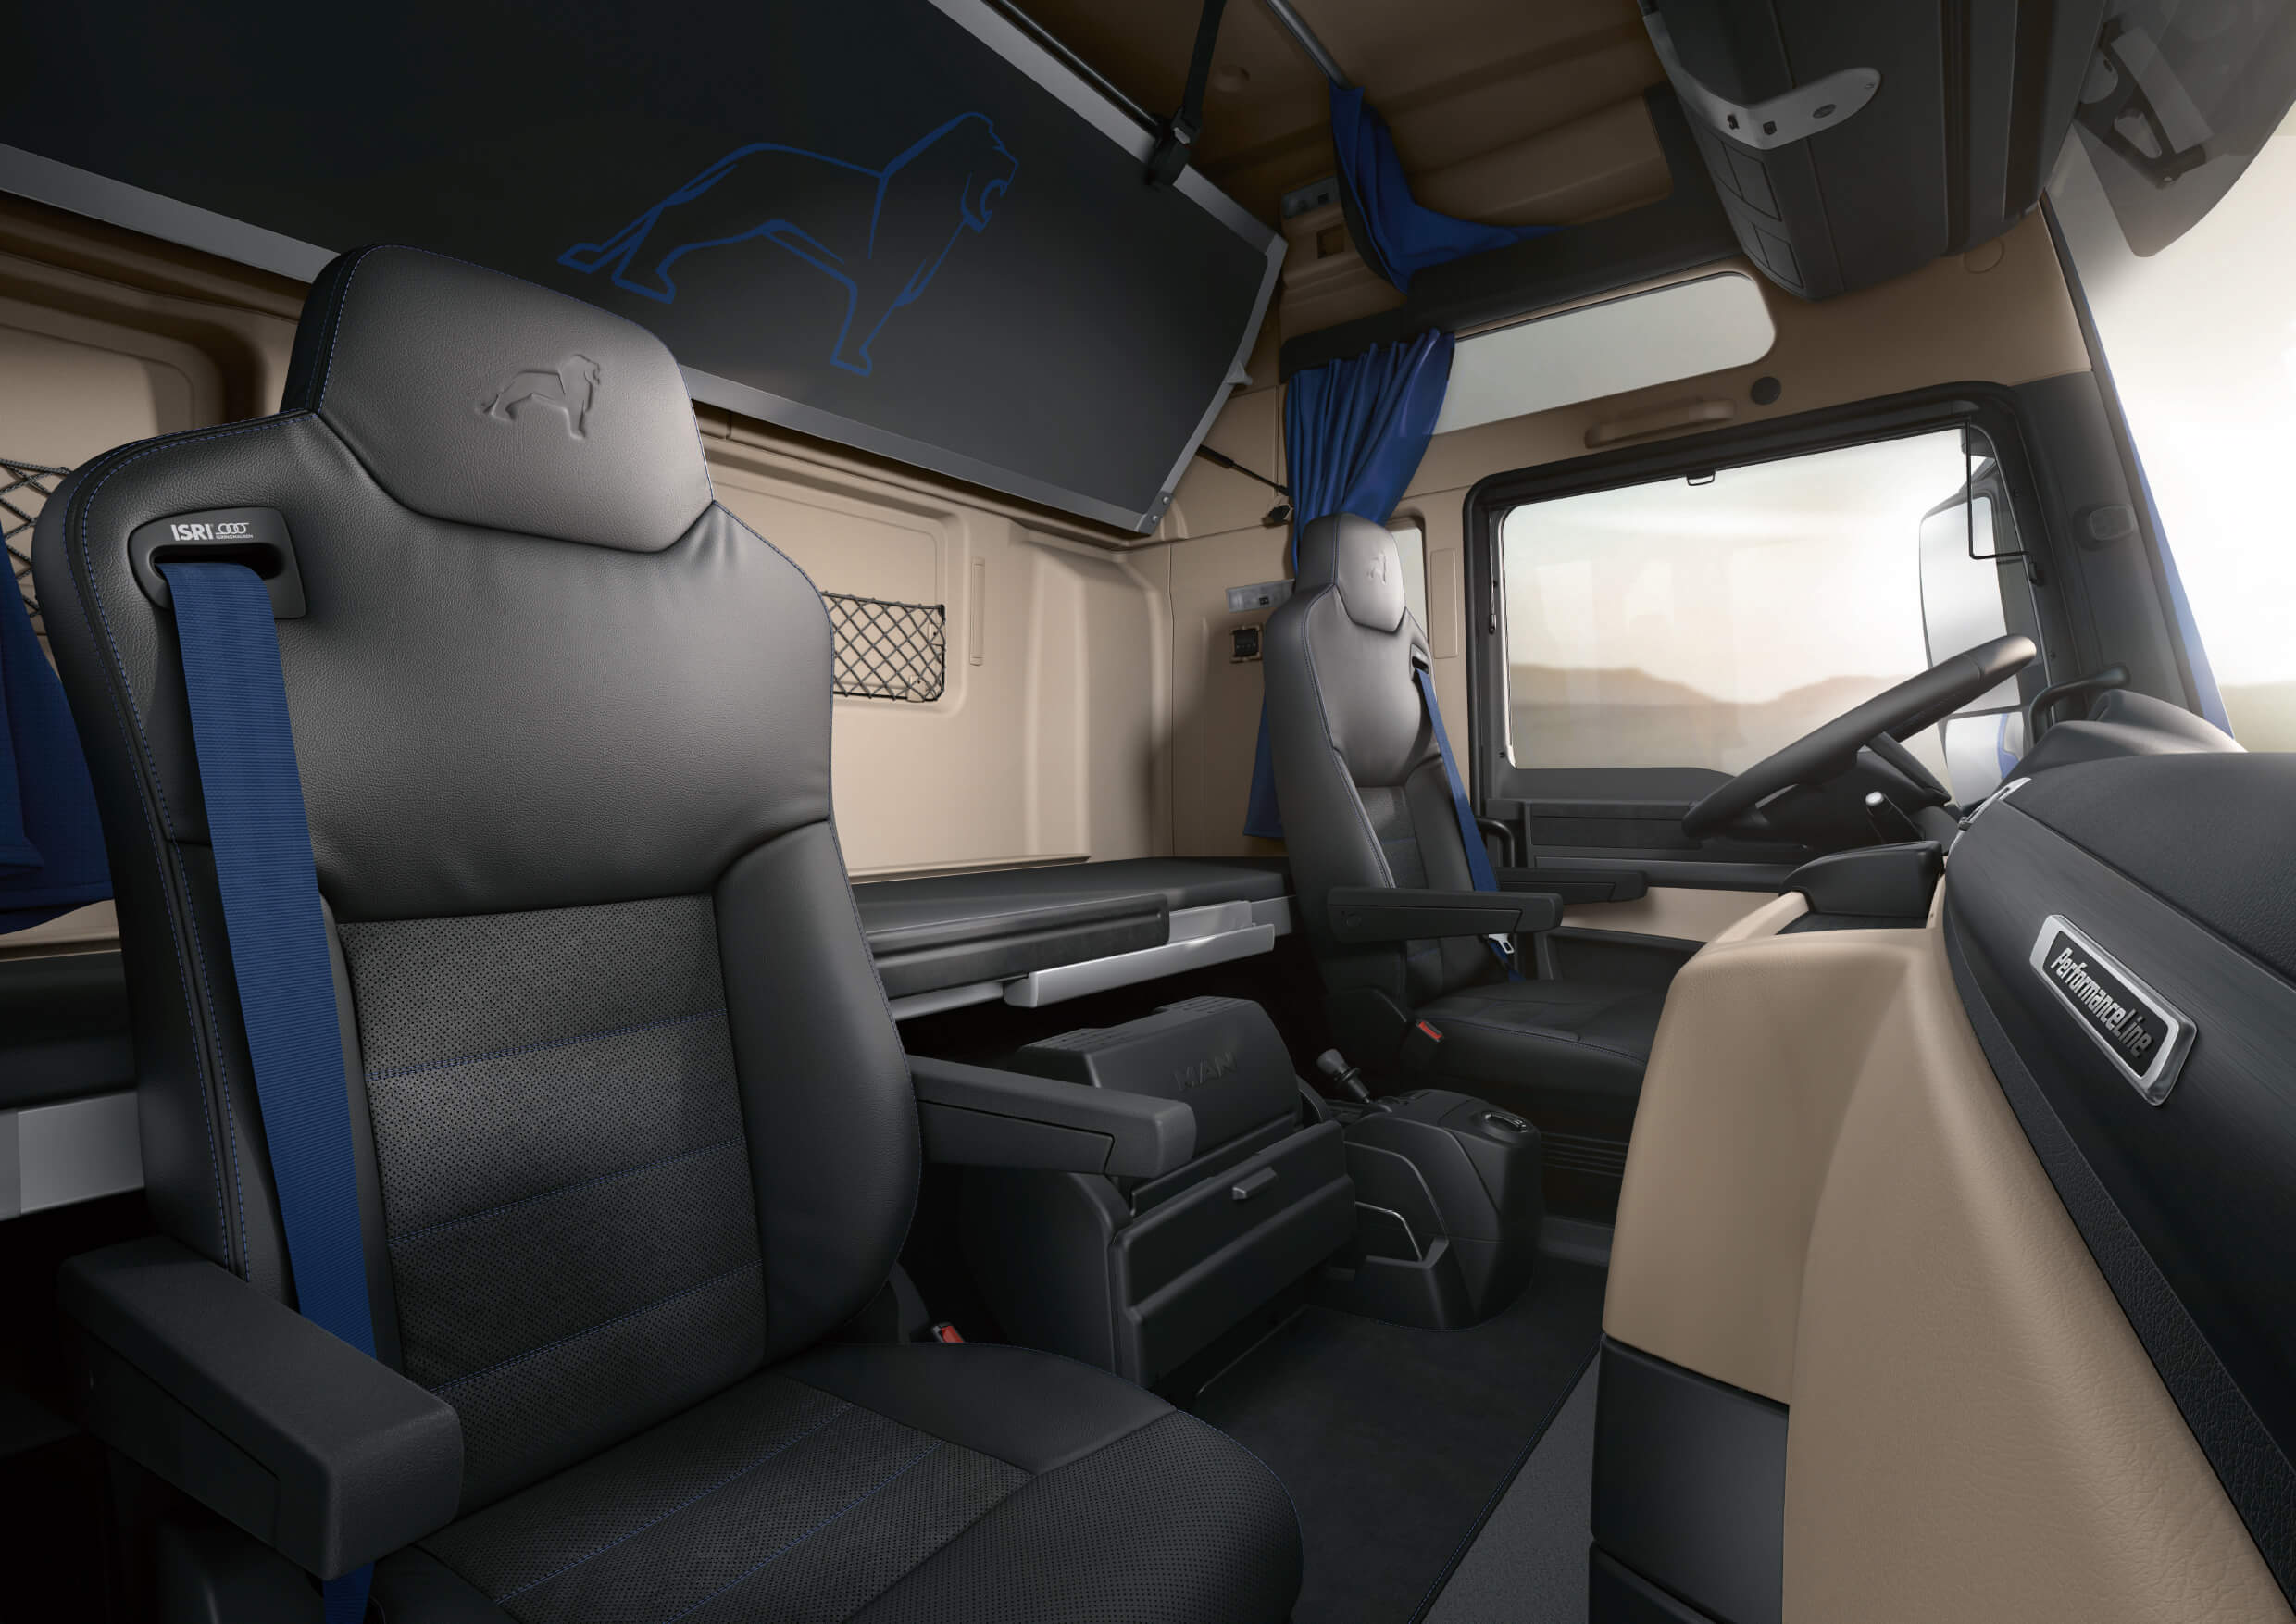 man tgx 640 performance testfahrt der trucker blog. Black Bedroom Furniture Sets. Home Design Ideas